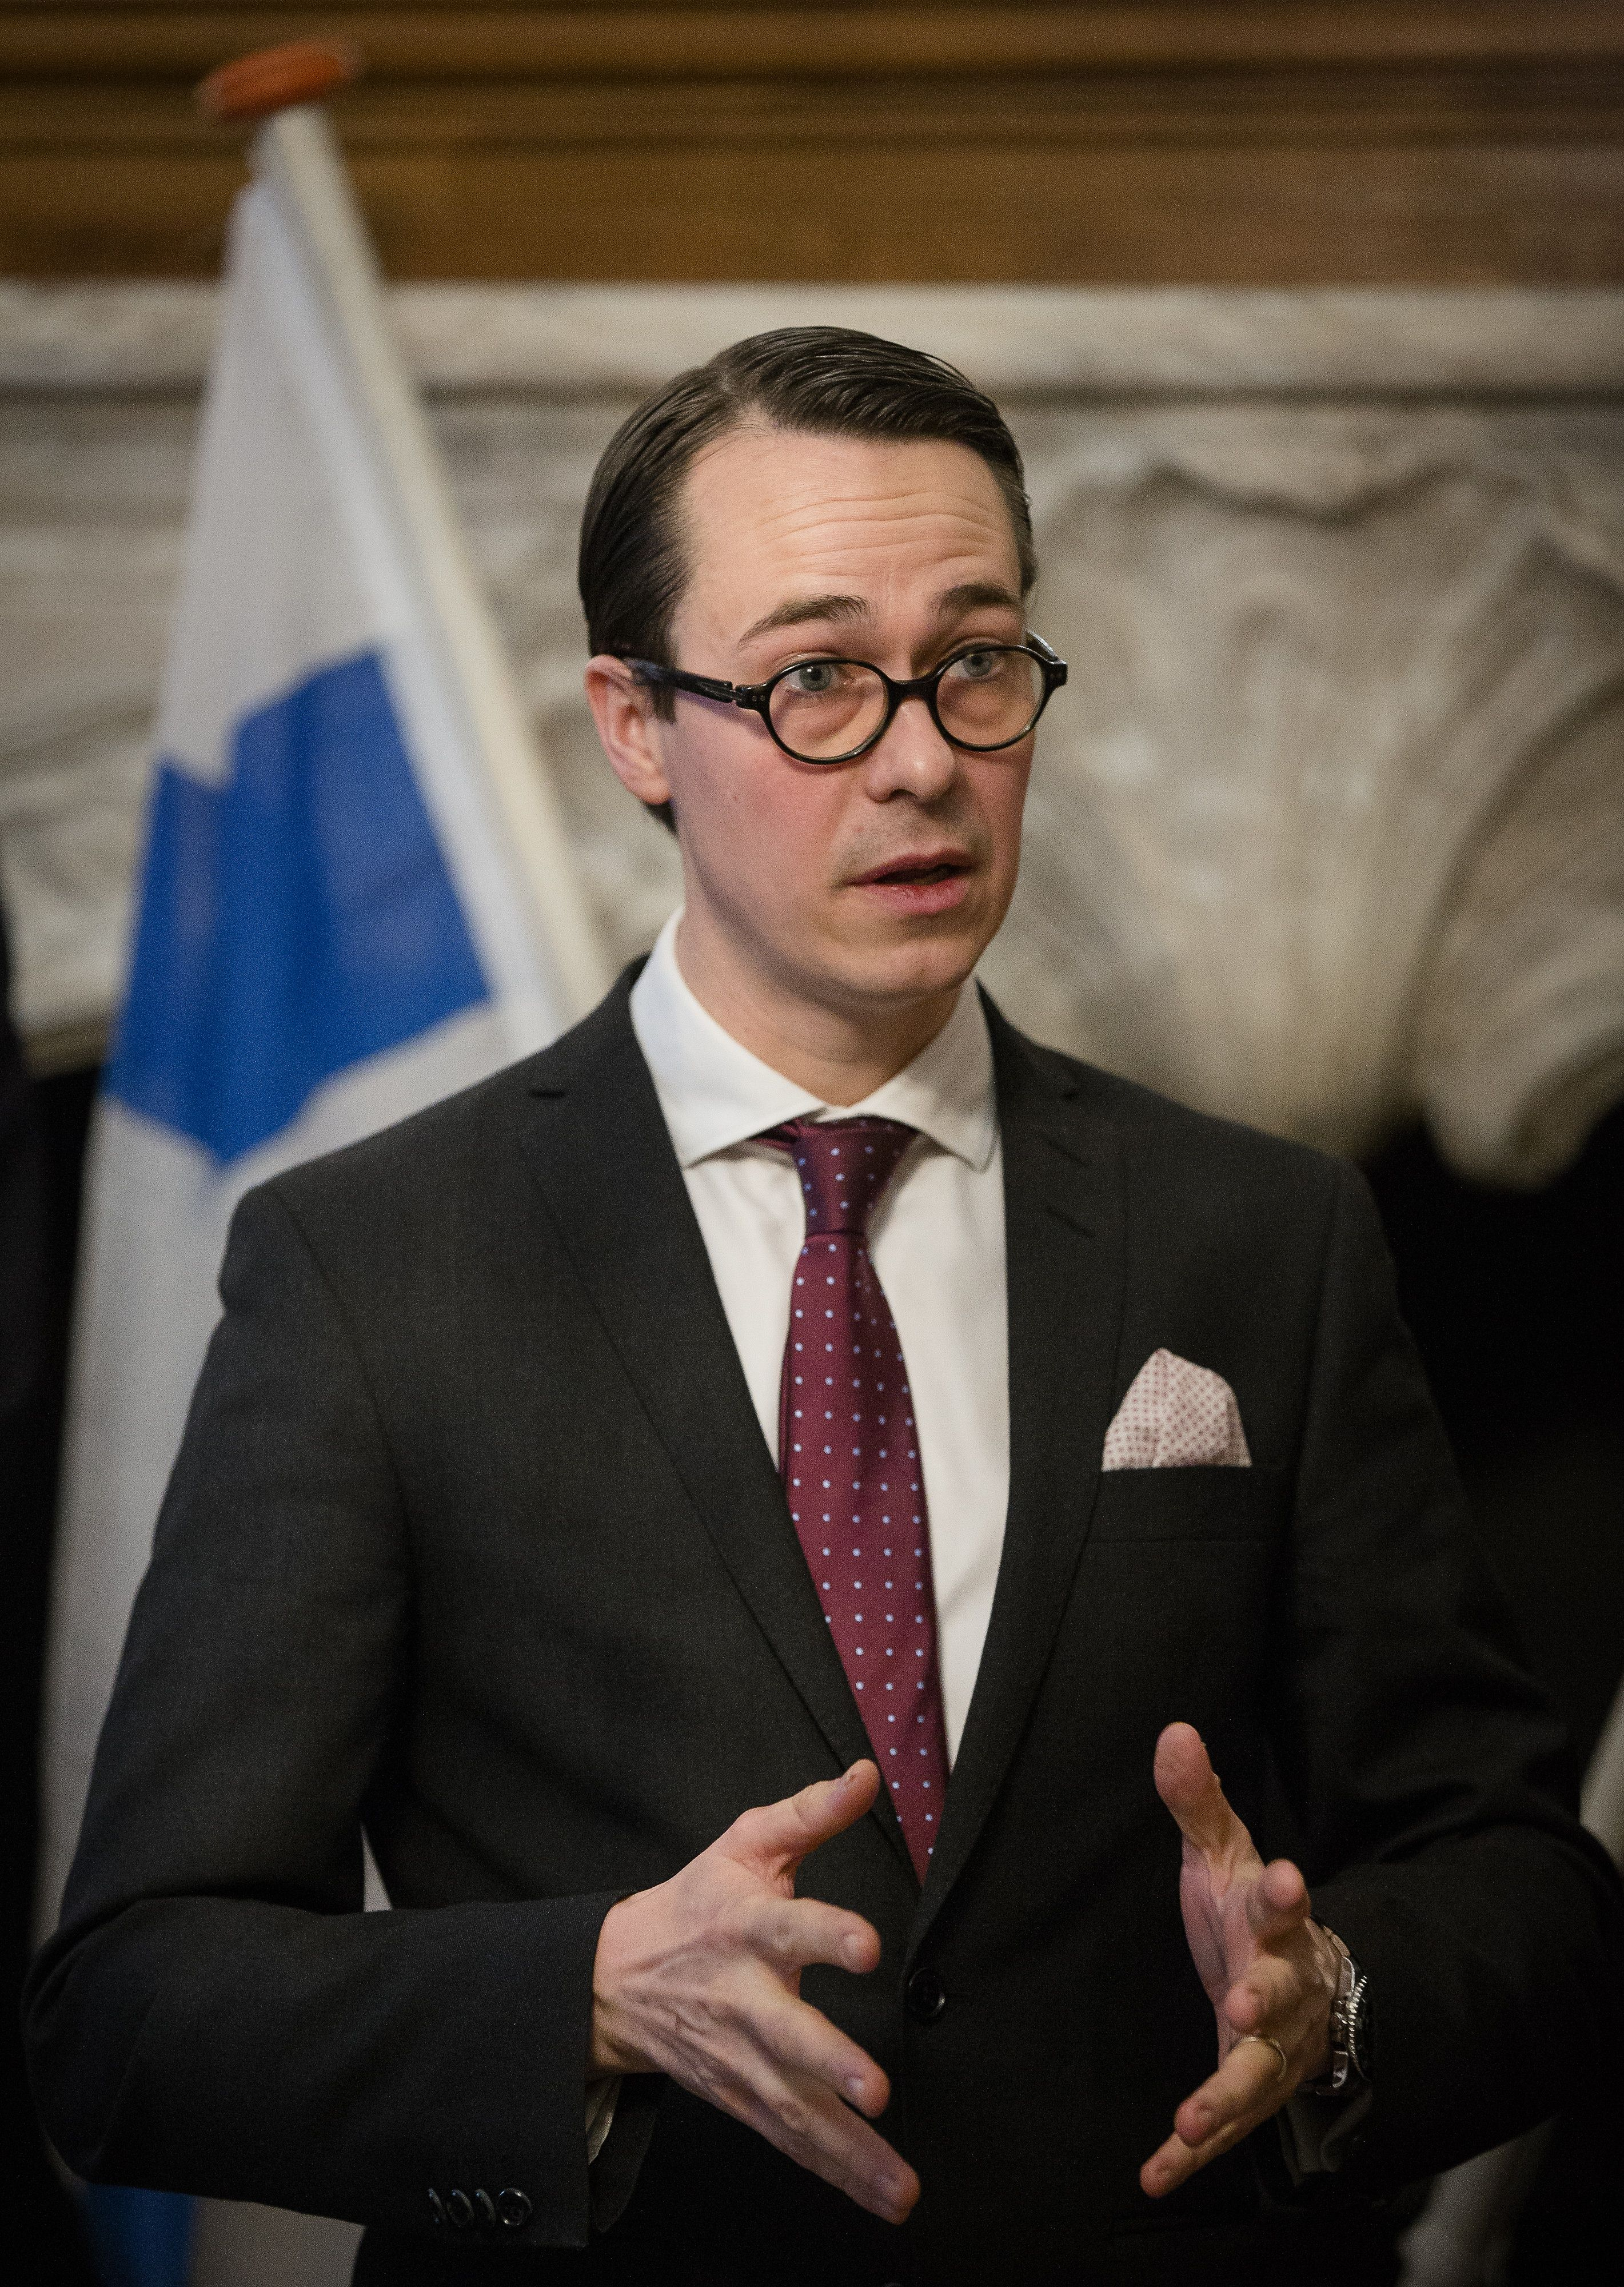 Finnish Minister of Defence Carl Haglund  in January 2014. (Bart Maat /AFP/Getty Images)